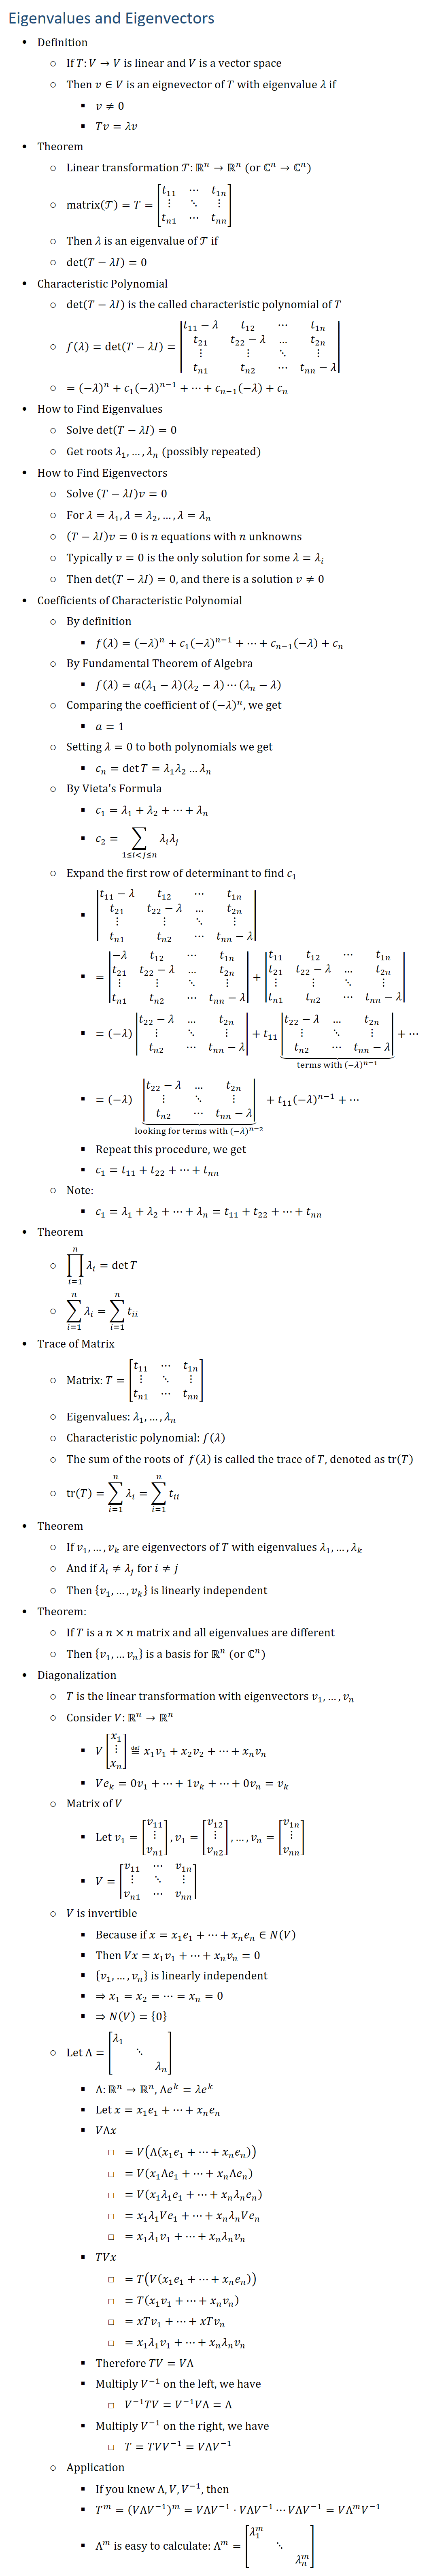 Eigenvalues and Eigenvectors • Definition ○ If T:V→V is linear and V is a vector space ○ Then v∈V is an eignevector of T with eigenvalue λ if § v≠0 § Tv=λv • Theorem ○ Linear transformation T:Rn→Rn (or ℂ^n→ℂ^n) ○ matrix(T)=T=[■8(t_11&⋯&t_1n@⋮&⋱&⋮@t_n1&⋯&t_nn )] ○ Then λ is an eigenvalue of T if ○ det⁡(T−λI)=0 • Characteristic Polynomial ○ det⁡(T−λI) is the called characteristic polynomial of T ○ f(λ)=det⁡(T−λI)=|■8(t_11−λ&t_12&⋯&t_1n@t_21&t_22−λ&…&t_2n@⋮&⋮&⋱&⋮@t_n1&t_n2&⋯&t_nn−λ)| ○ =(−λ)^n+c_1 (−λ)^(n−1)+…+c_(n−1) (−λ)+c_n • How to Find Eigenvalues ○ Solve det⁡(T−λI)=0 ○ Get roots λ_1,…,λ_n (possibly repeated) • How to Find Eigenvectors ○ Solve (T−λI)v=0 ○ For λ=λ_1,λ=λ_2,…,λ=λ_n ○ (T−λI)v=0 is n equations with n unknowns ○ Typically v=0 is the only solution for some λ=λ_i ○ Then det⁡(T−λI)=0, and there is a solution v≠0 • Coefficients of Characteristic Polynomial ○ By definition § f(λ)=(−λ)^n+c_1 (−λ)^(n−1)+…+c_(n−1) (−λ)+c_n ○ By Fundamental Theorem of Algebra § f(λ)=a(λ_1−λ)(λ_2−λ)⋯(λ_n−λ) ○ Comparing the coefficient of (−λ)^n, we get § a=1 ○ Setting λ=0 to both polynomials we get § c_n=det⁡T=λ_1 λ_2…λ_n ○ By Vieta